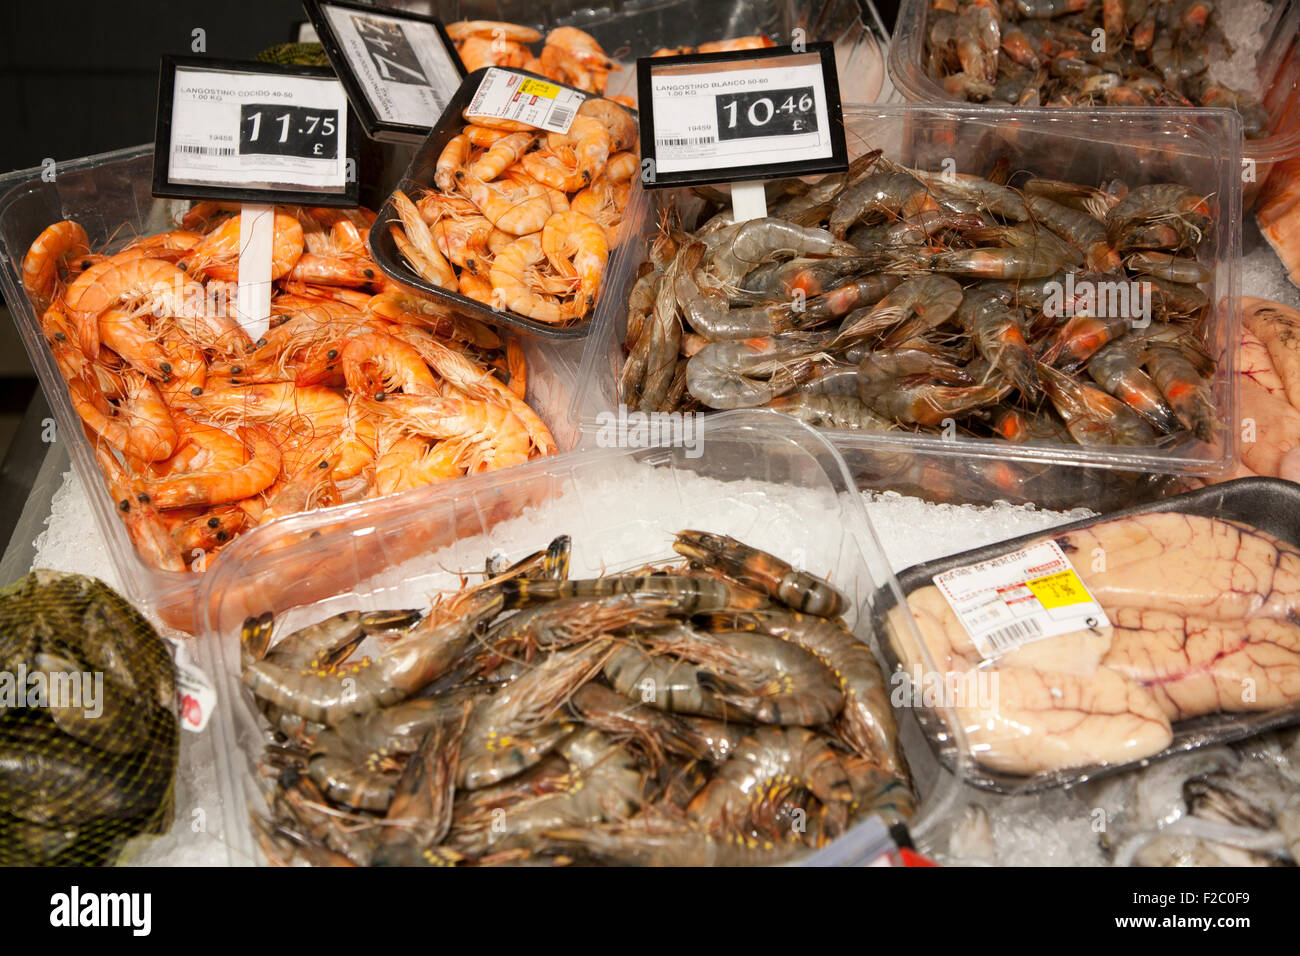 Fresh local fish on sale in ice, Gibraltar, British terroritory in southern Europe - Stock Image